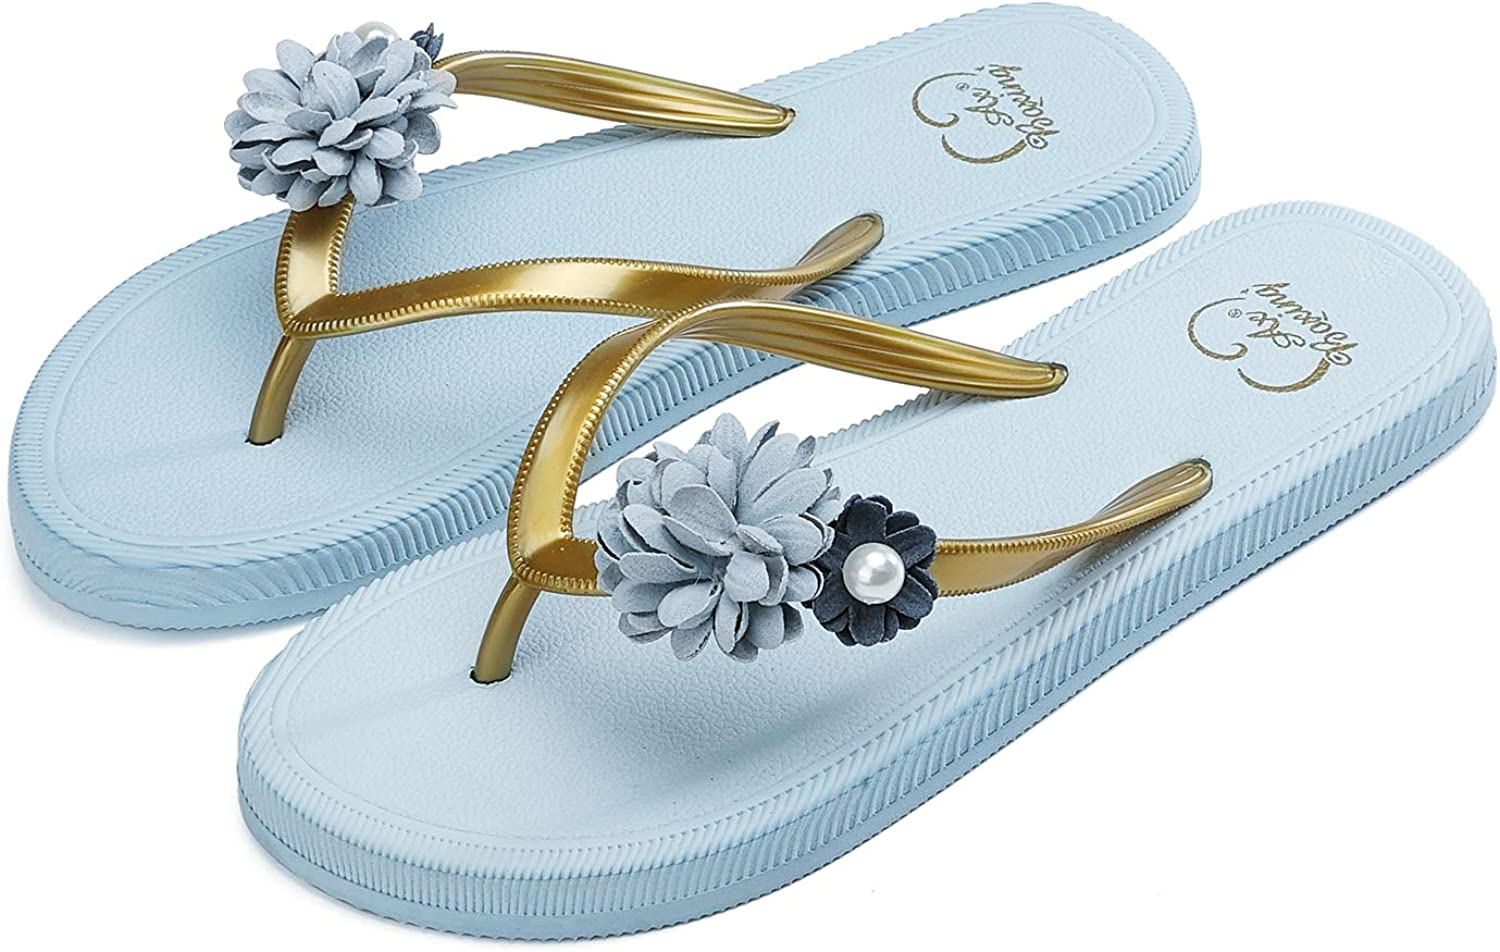 AX BOXING Womens Flip Flops Delicate Flower Decoration Sandals Slippers Lightweight Beach Pool Indoor Outdoor Size 4-7